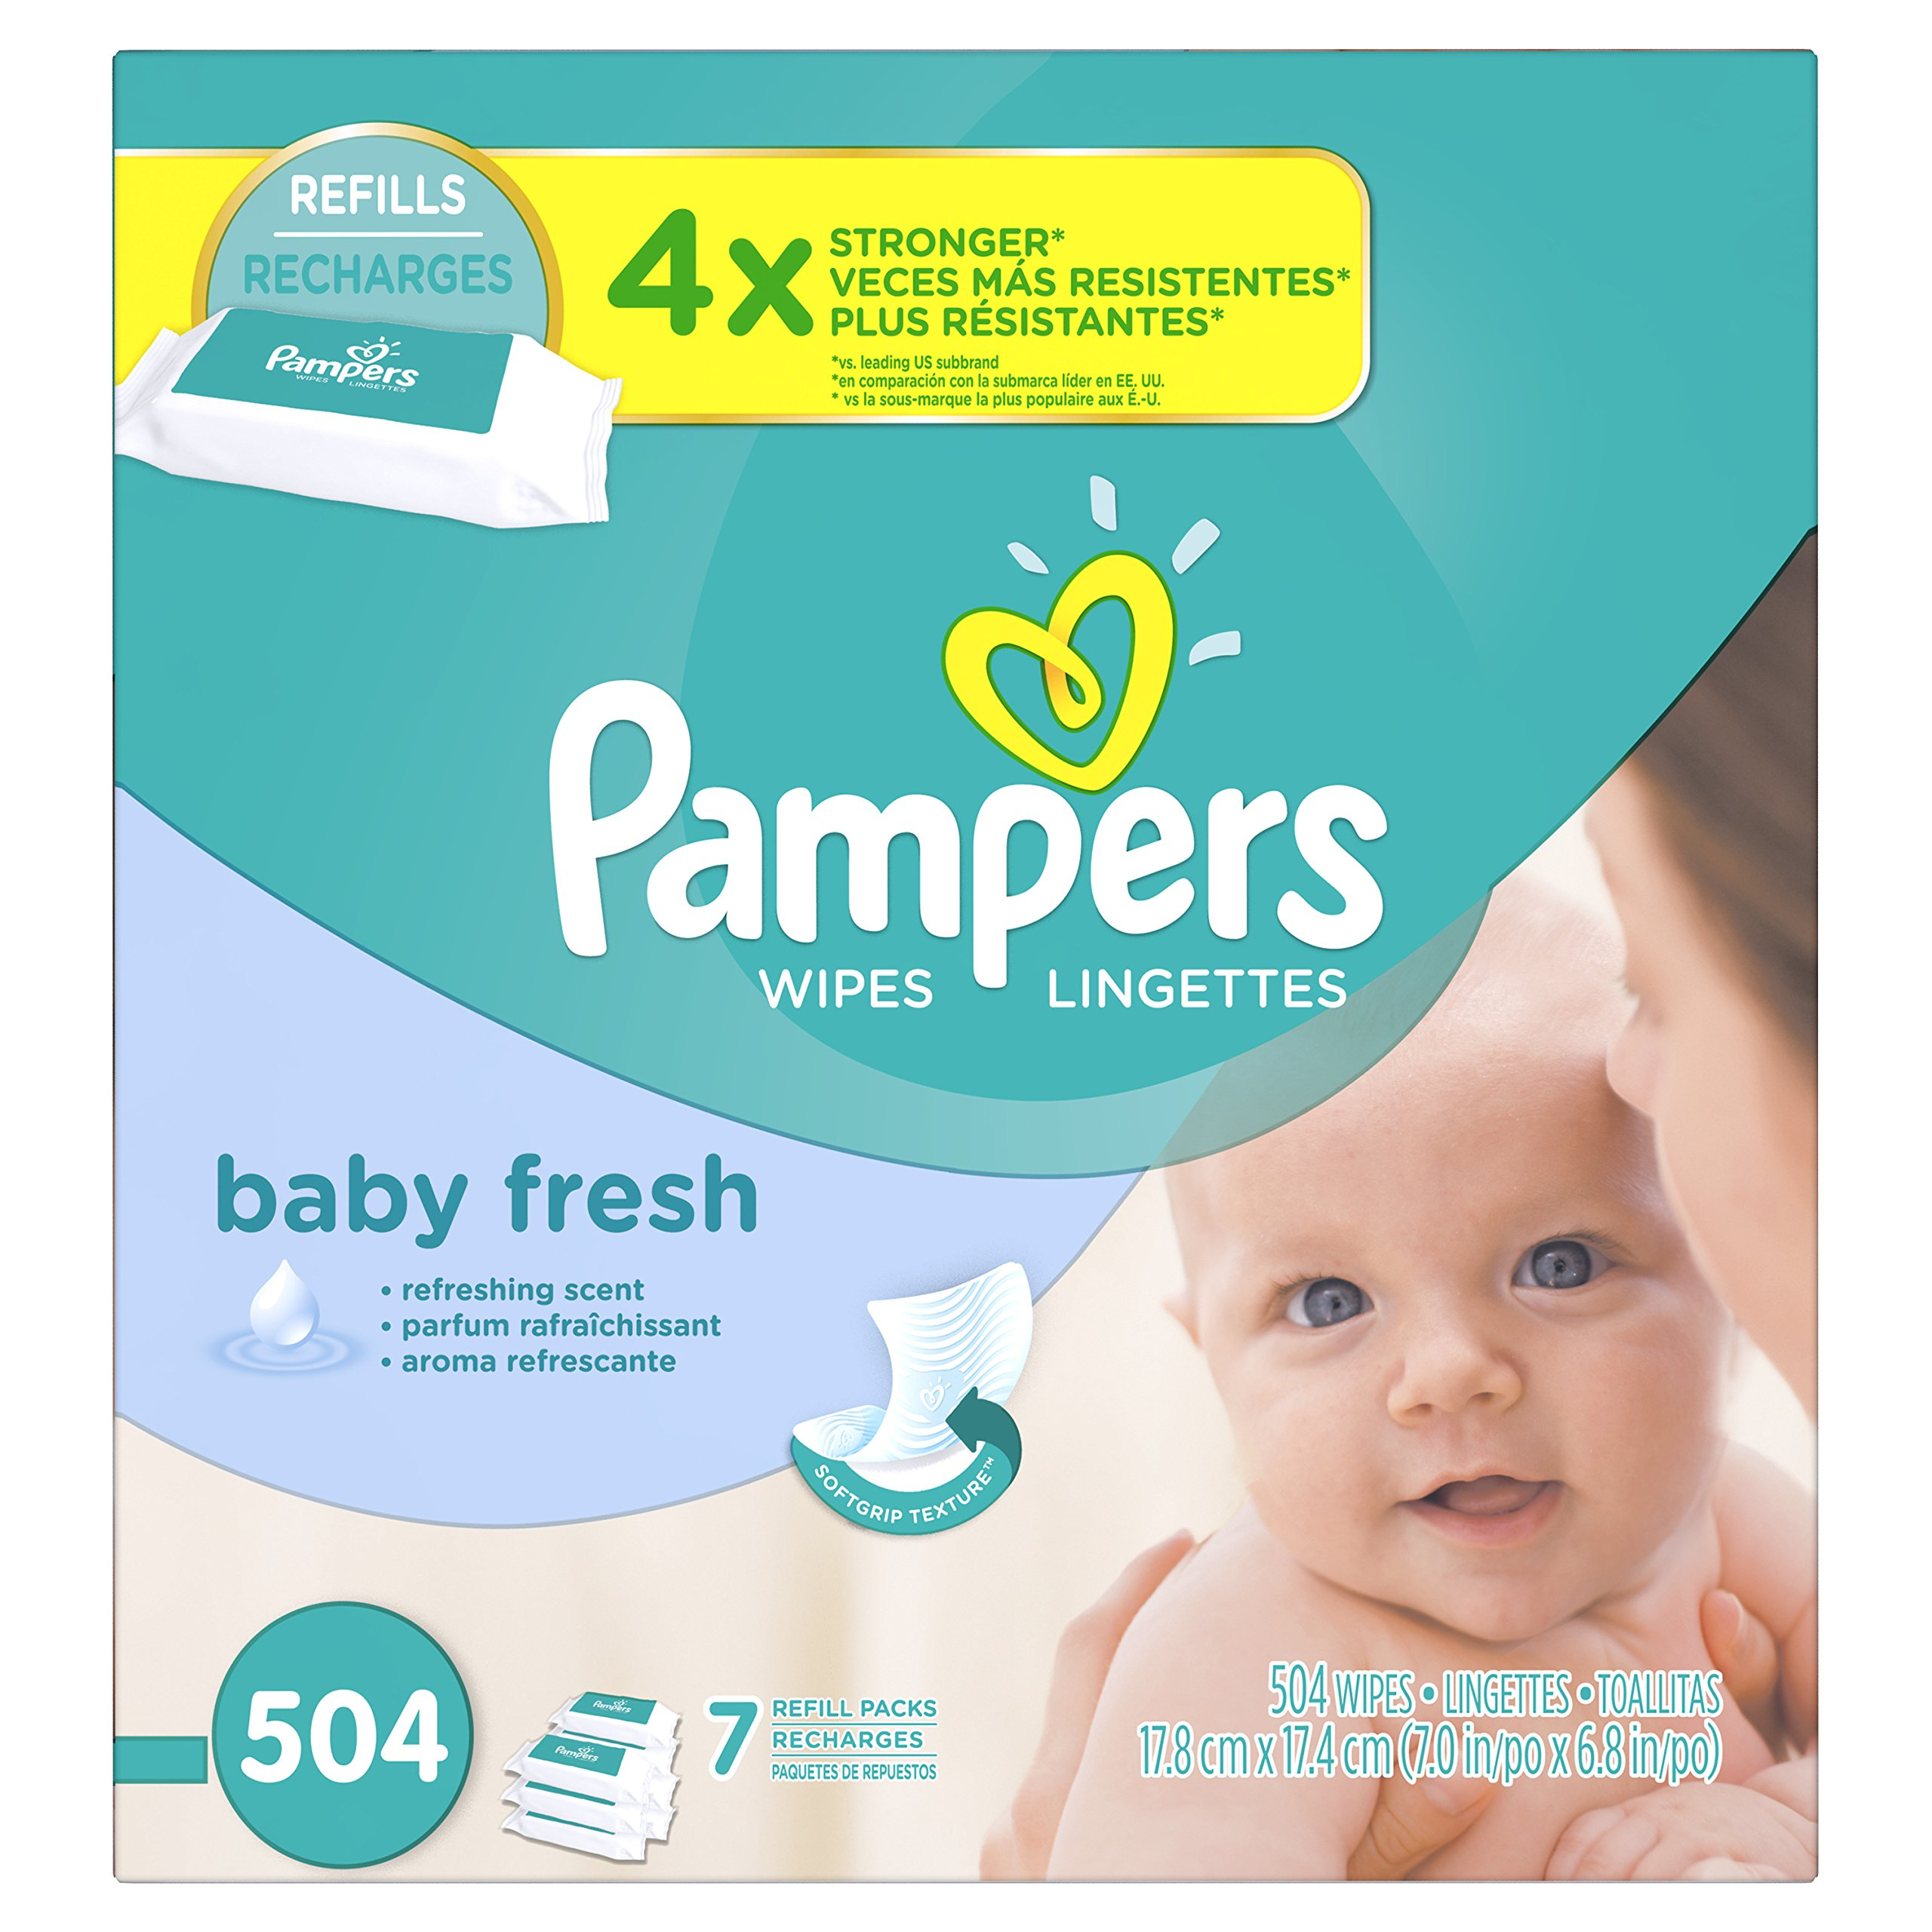 Pampers Baby Fresh Water Baby Wipes 7X Refill Packs, 504 Count by Pampers